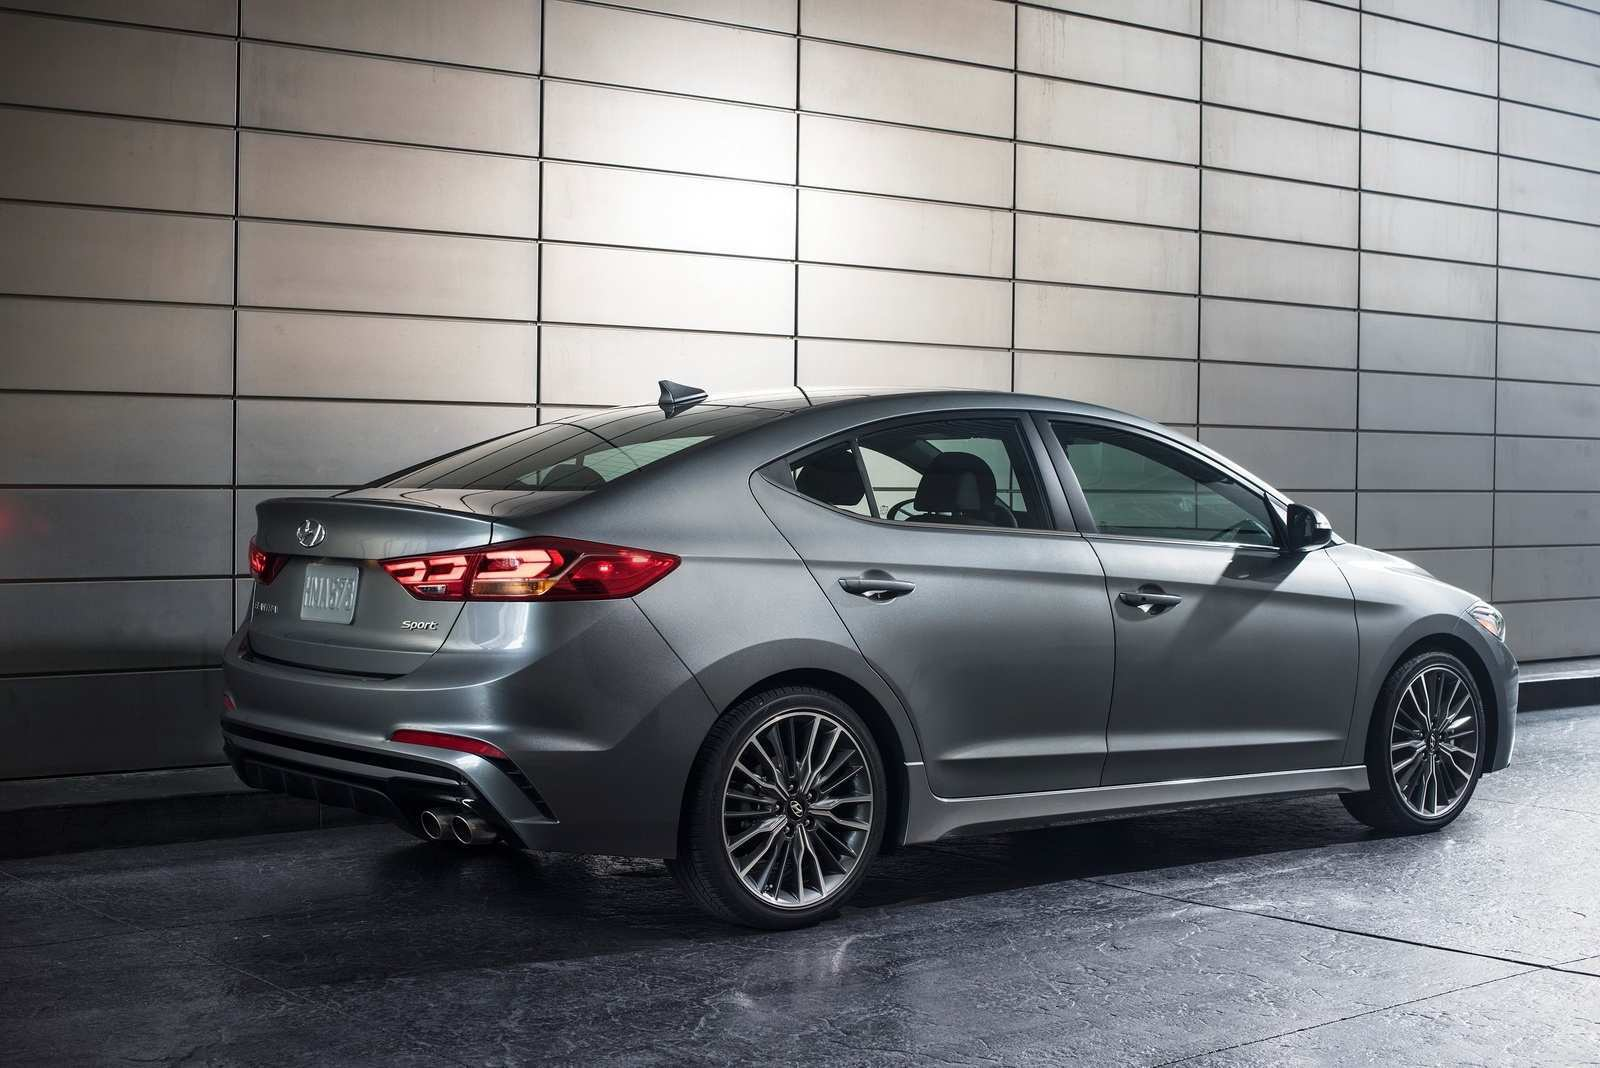 85 The 2020 Hyundai Elantra Overview by 2020 Hyundai Elantra